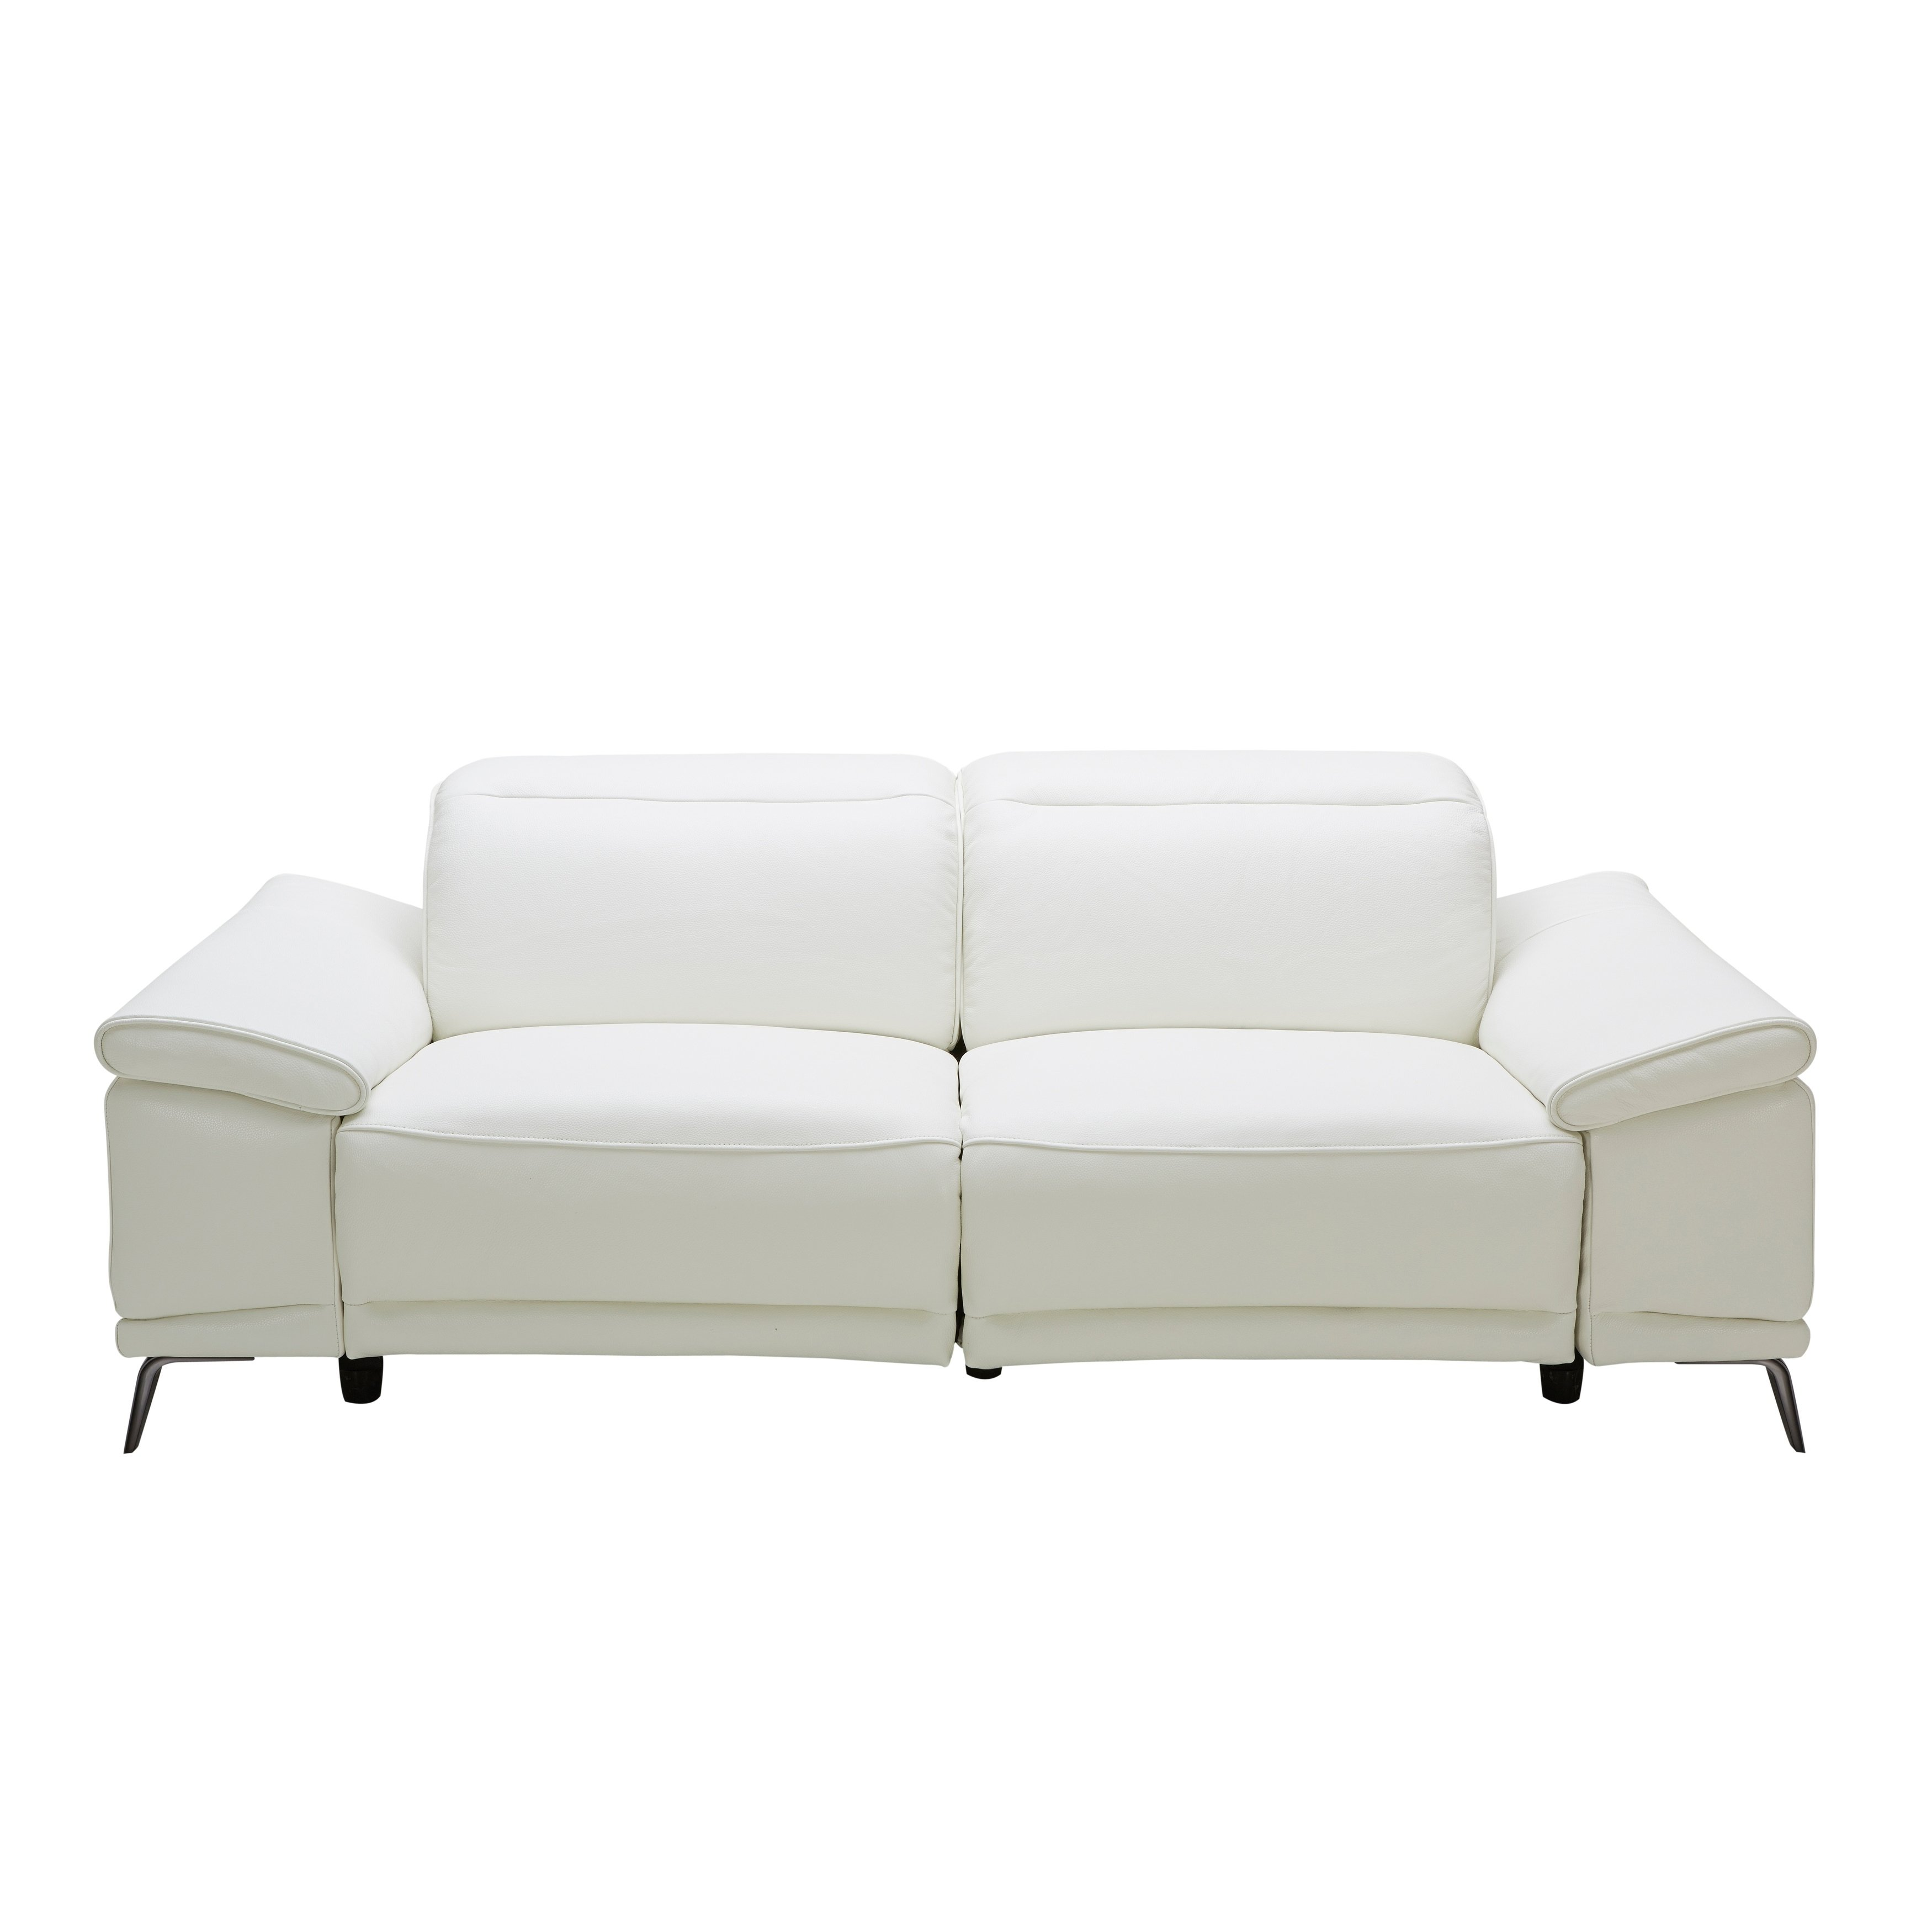 Fantastic Gaia Sofa White Leather Products In 2019 Leather Unemploymentrelief Wooden Chair Designs For Living Room Unemploymentrelieforg